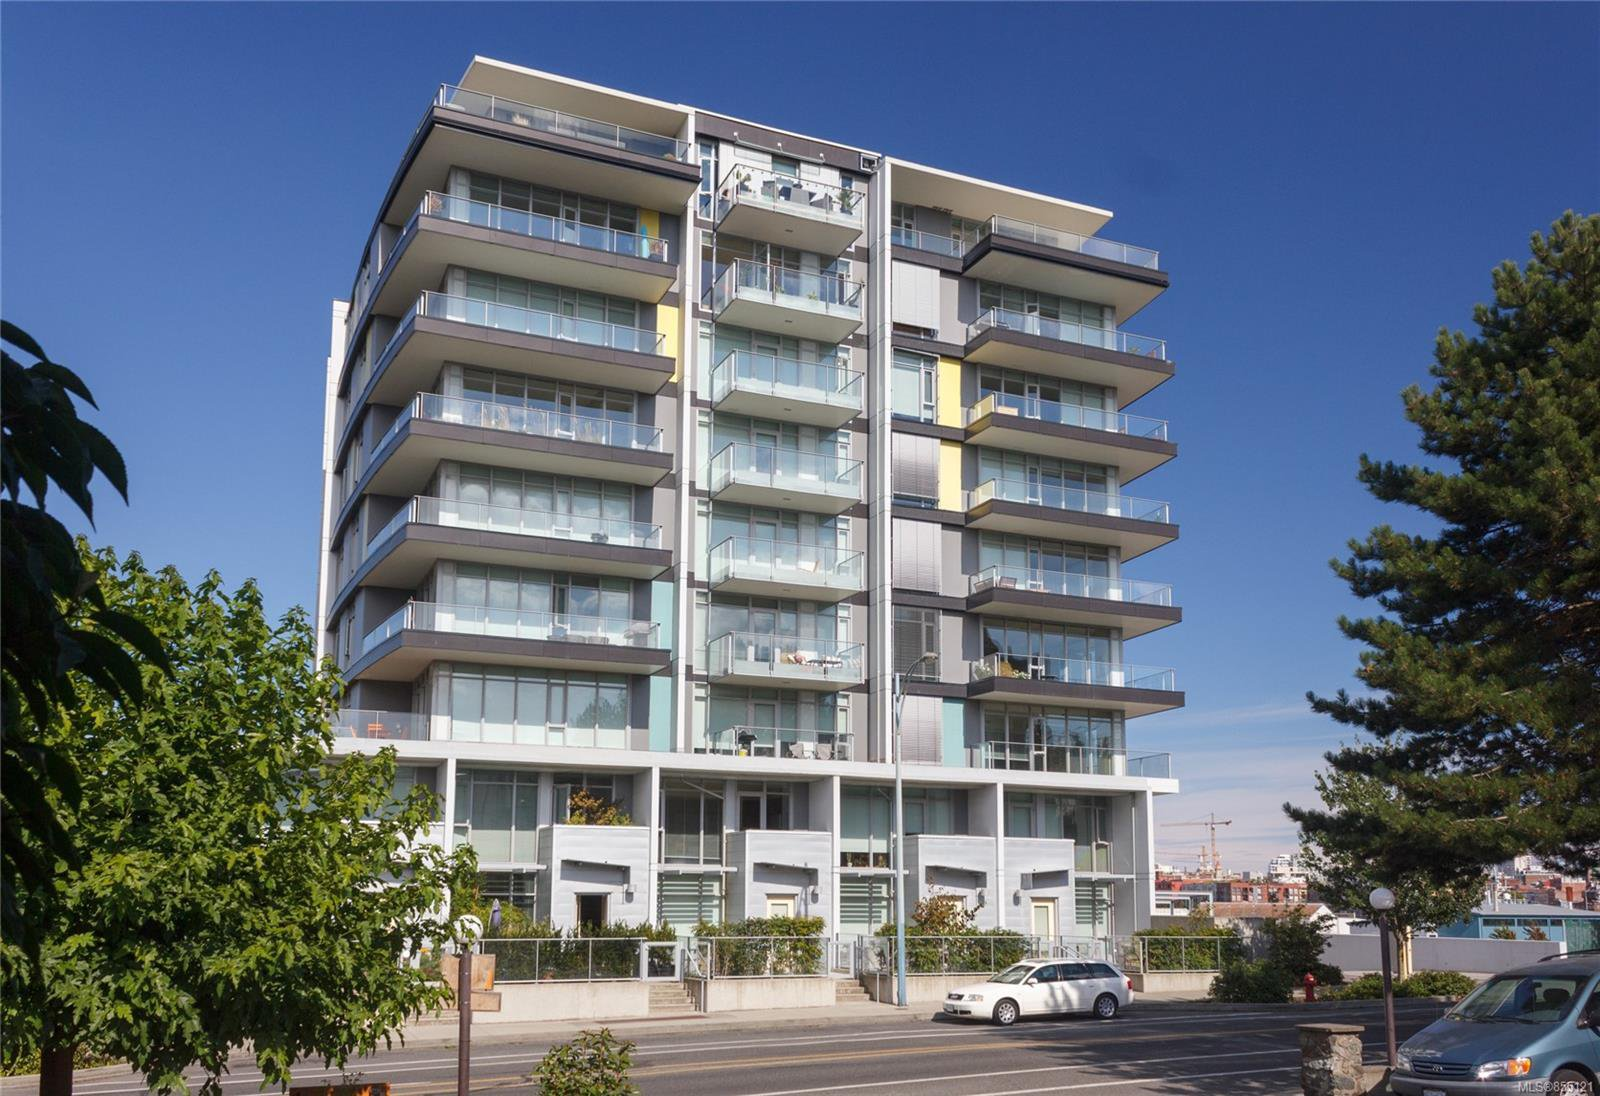 Main Photo: 504 373 Tyee Rd in : VW Victoria West Condo for sale (Victoria West)  : MLS®# 855121